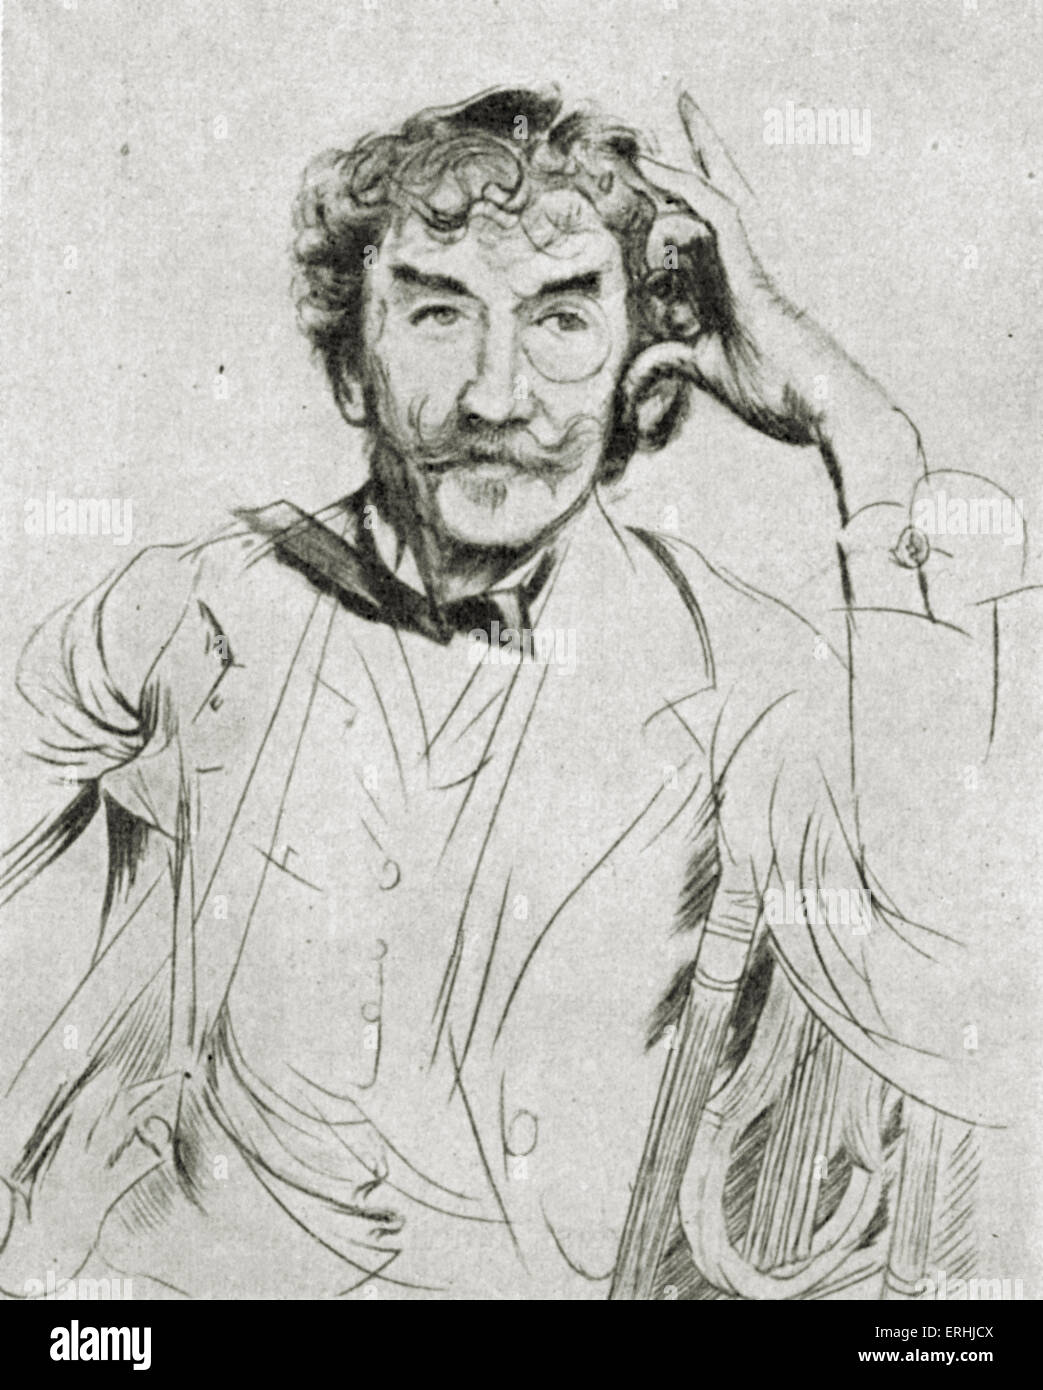 James Abbott McNeill Whistler - portrait of the American artist. 14 July 1834 – 17 July 1903 - Stock Image